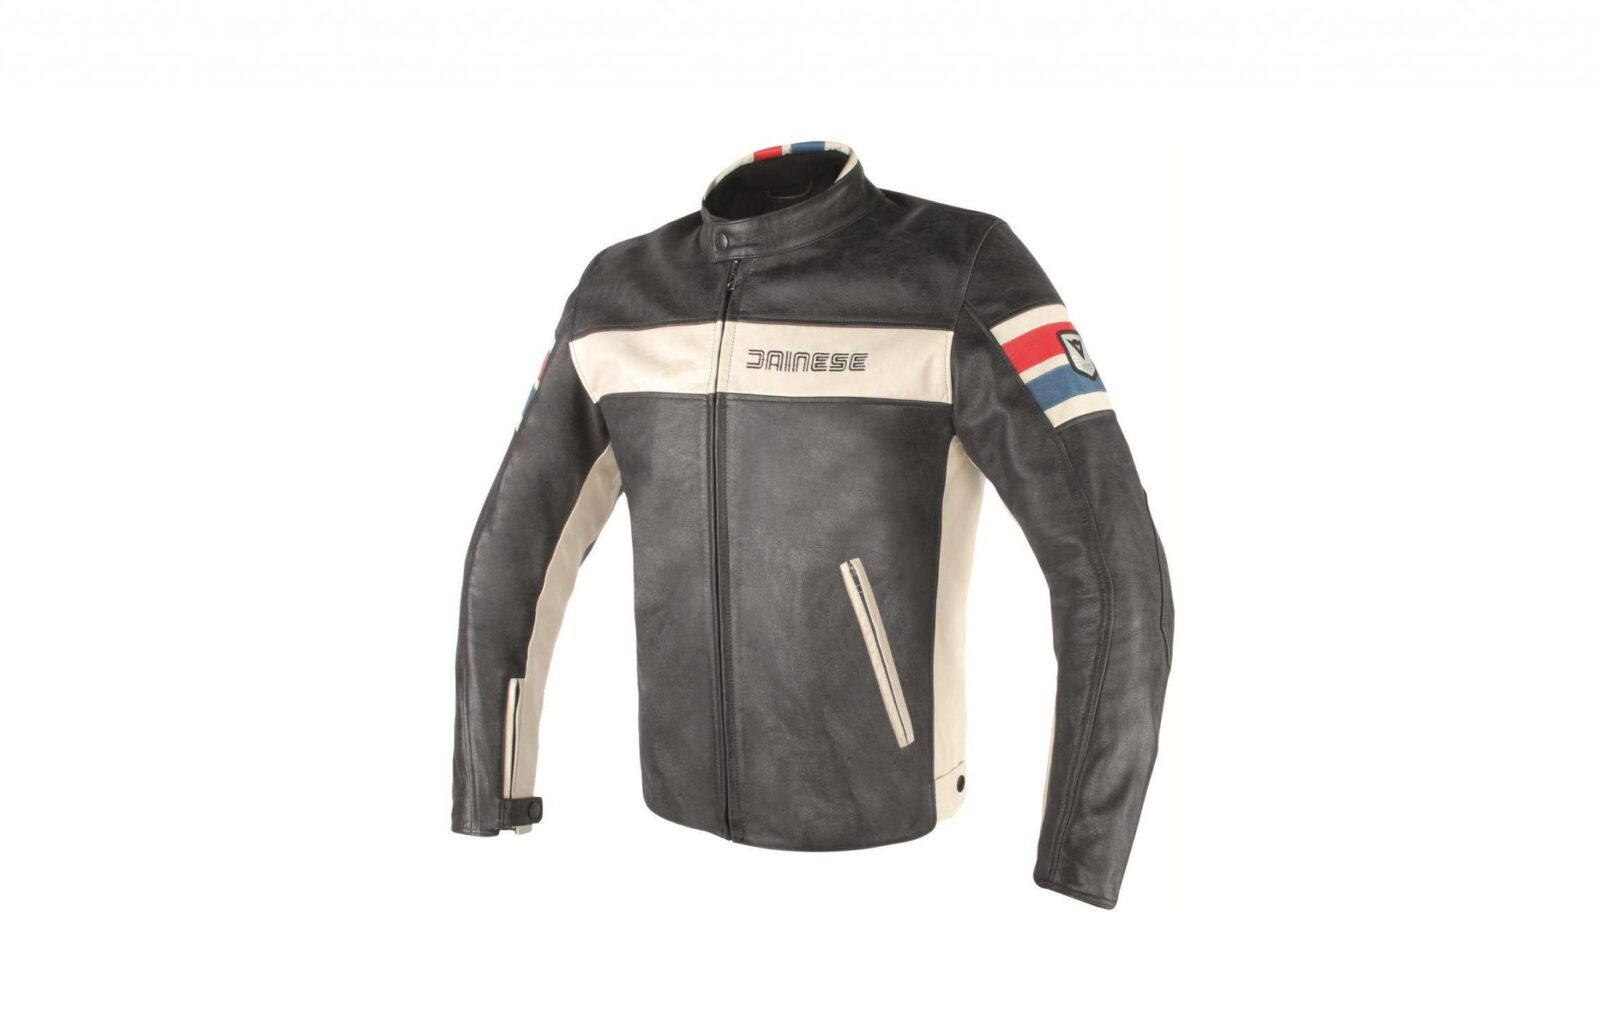 Dainese HF D1 Perforated Leather Jacket 1600x1032 - Dainese HF D1 Perforated Leather Jacket